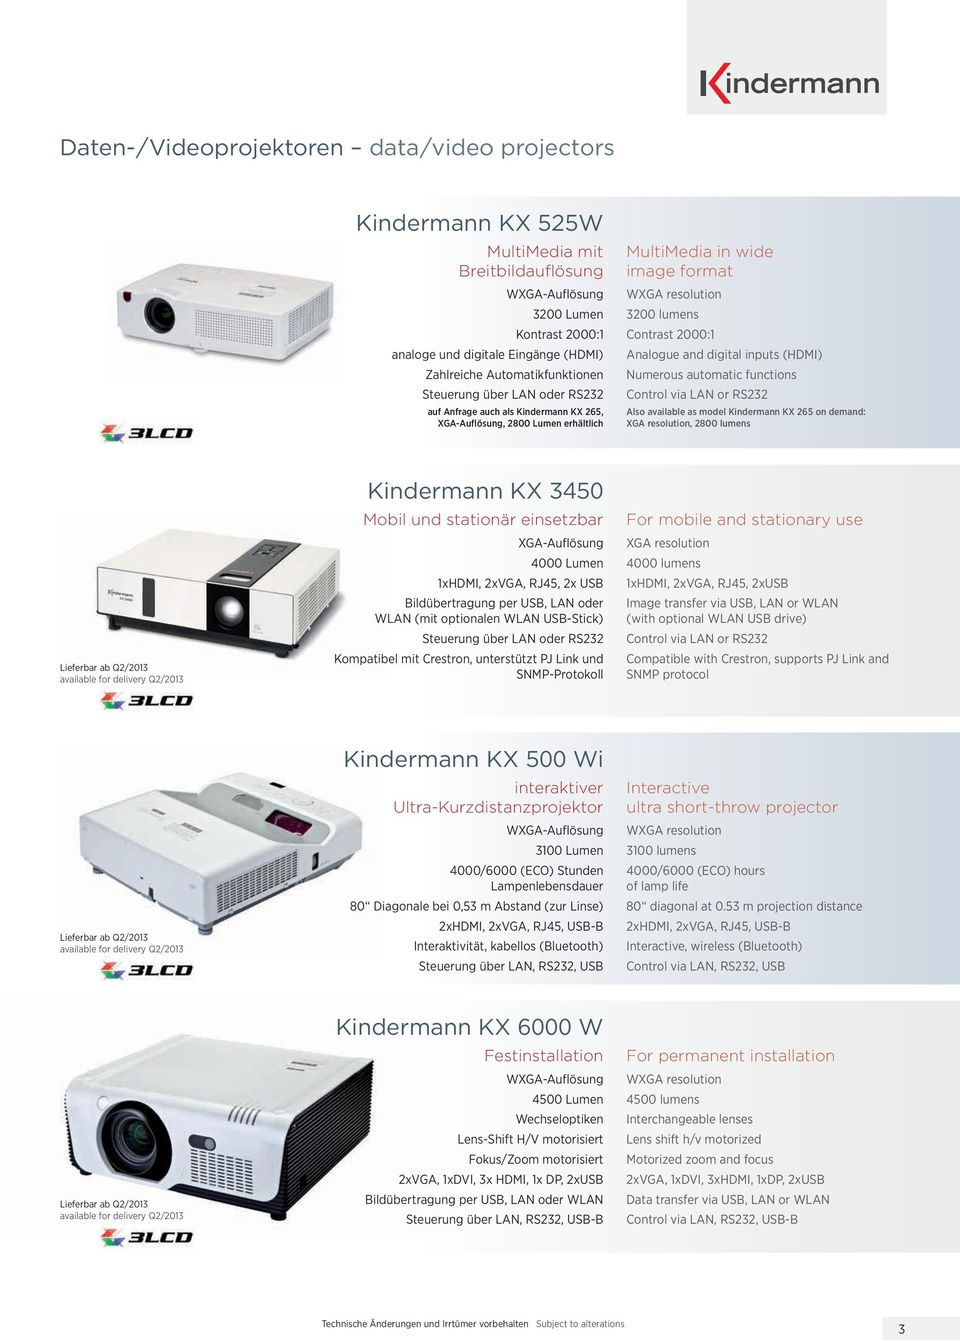 2000:1 Analogue and digital inputs (HDMI) Numerous automatic functions Control via LAN or RS232 Also available as model Kindermann KX 265 on demand: XGA resolution, 2800 lumens Lieferbar ab Q2/2013